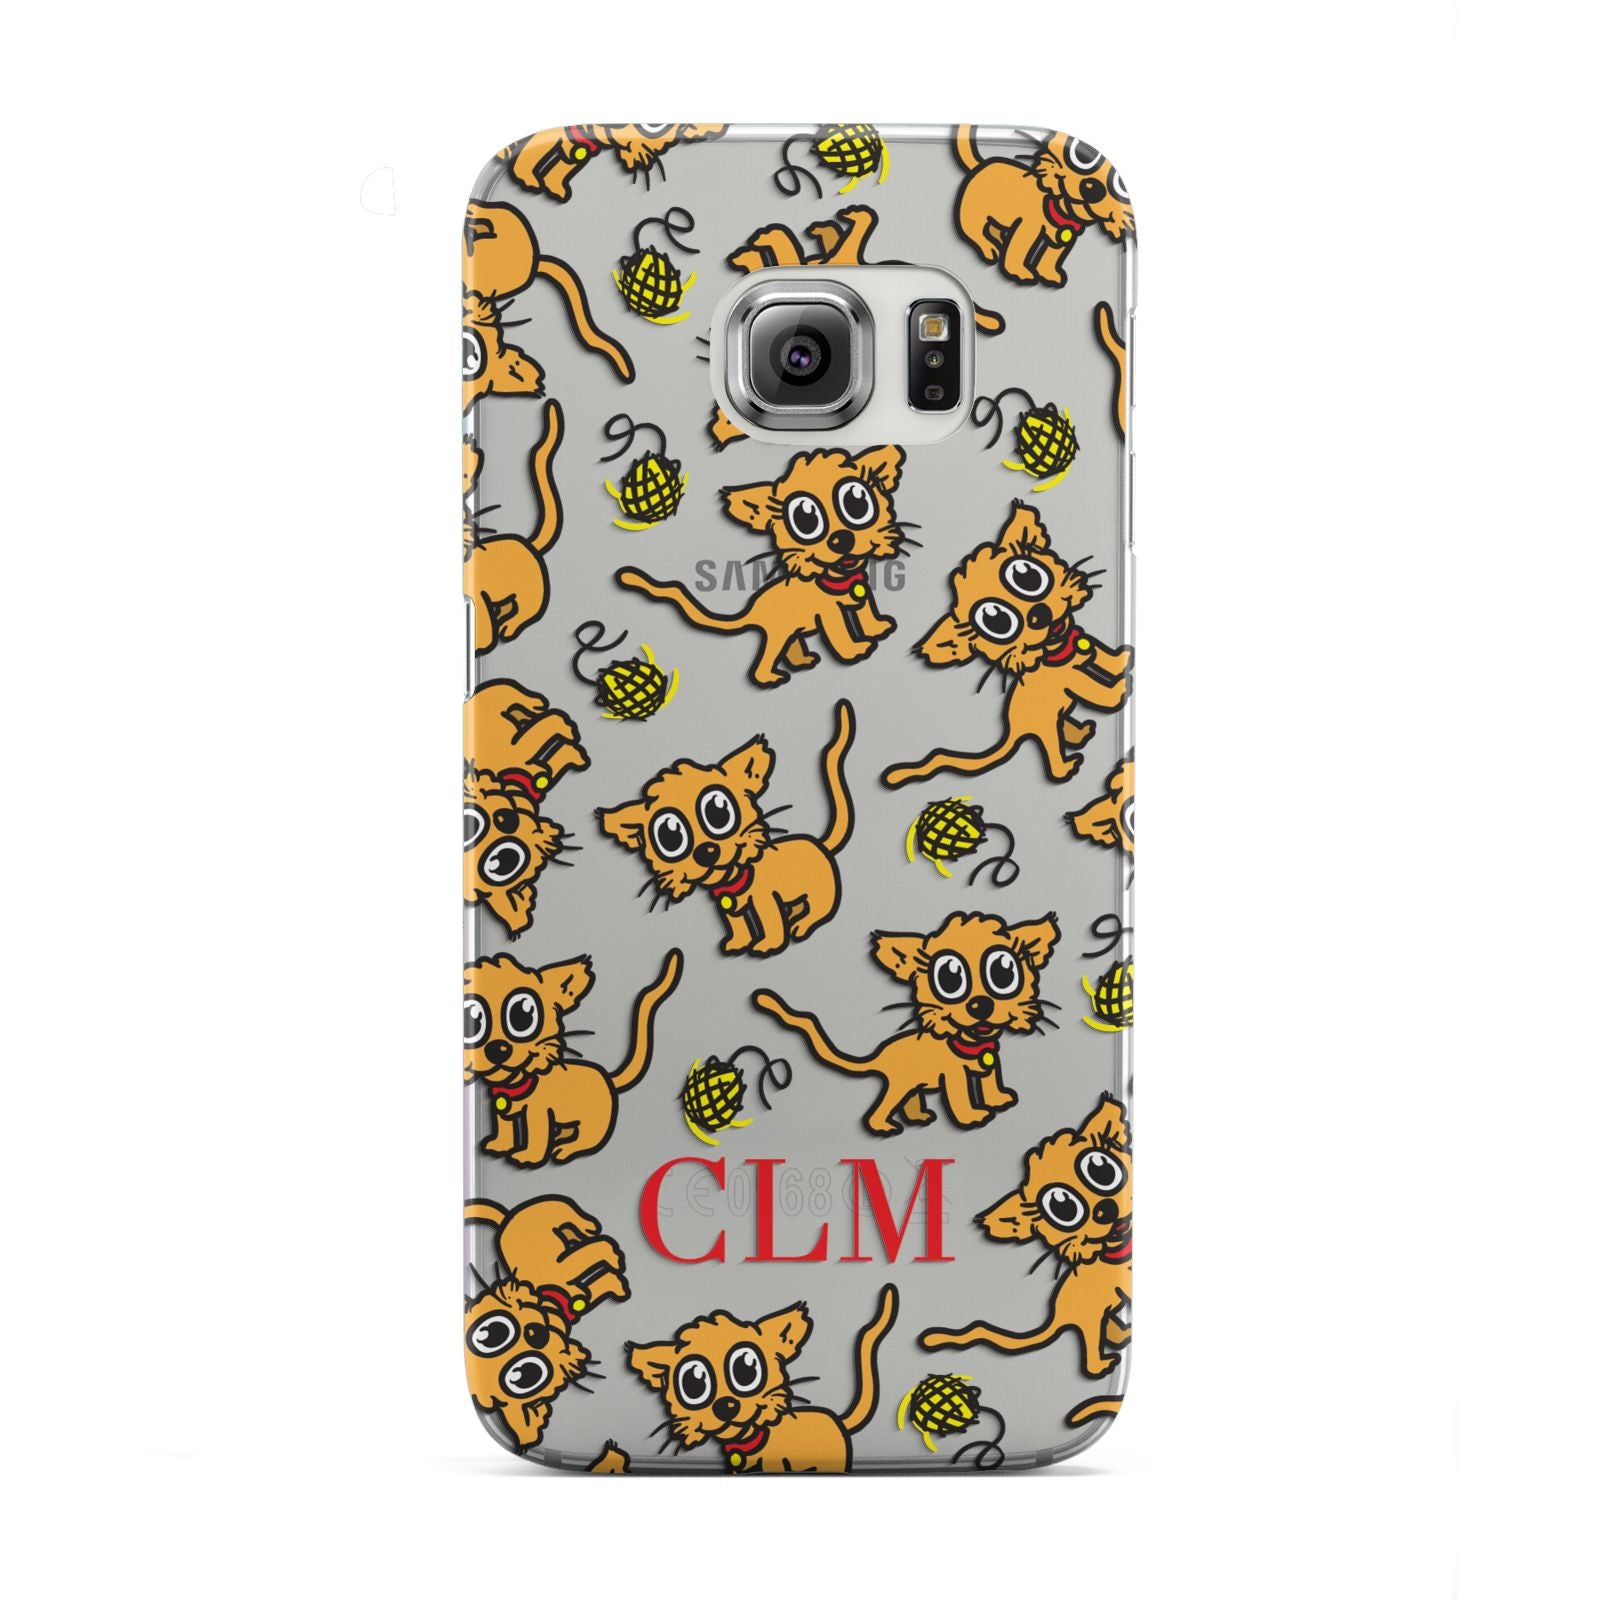 Personalised Puppy Initials Clear Samsung Galaxy S6 Edge Case